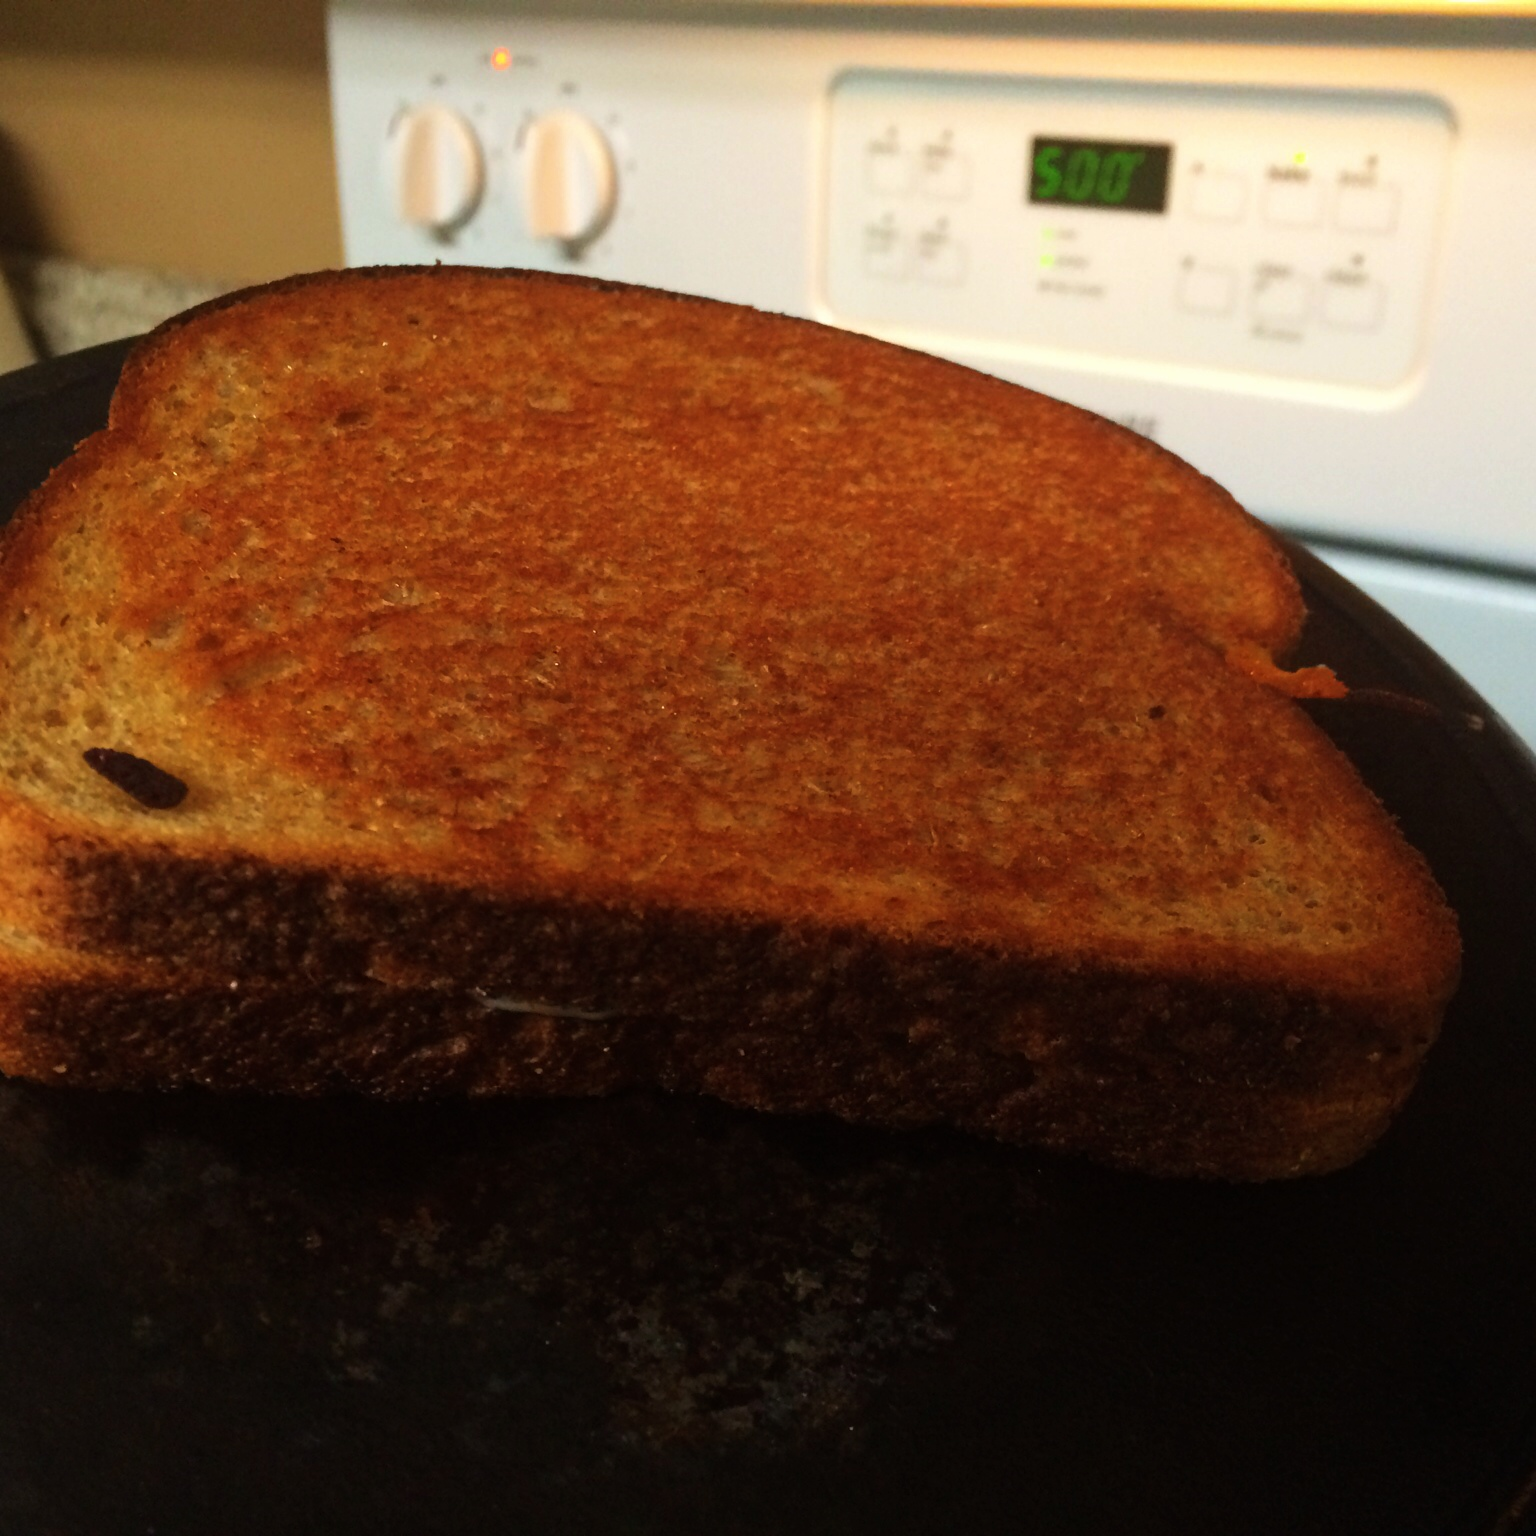 Finished Grilled Cheese